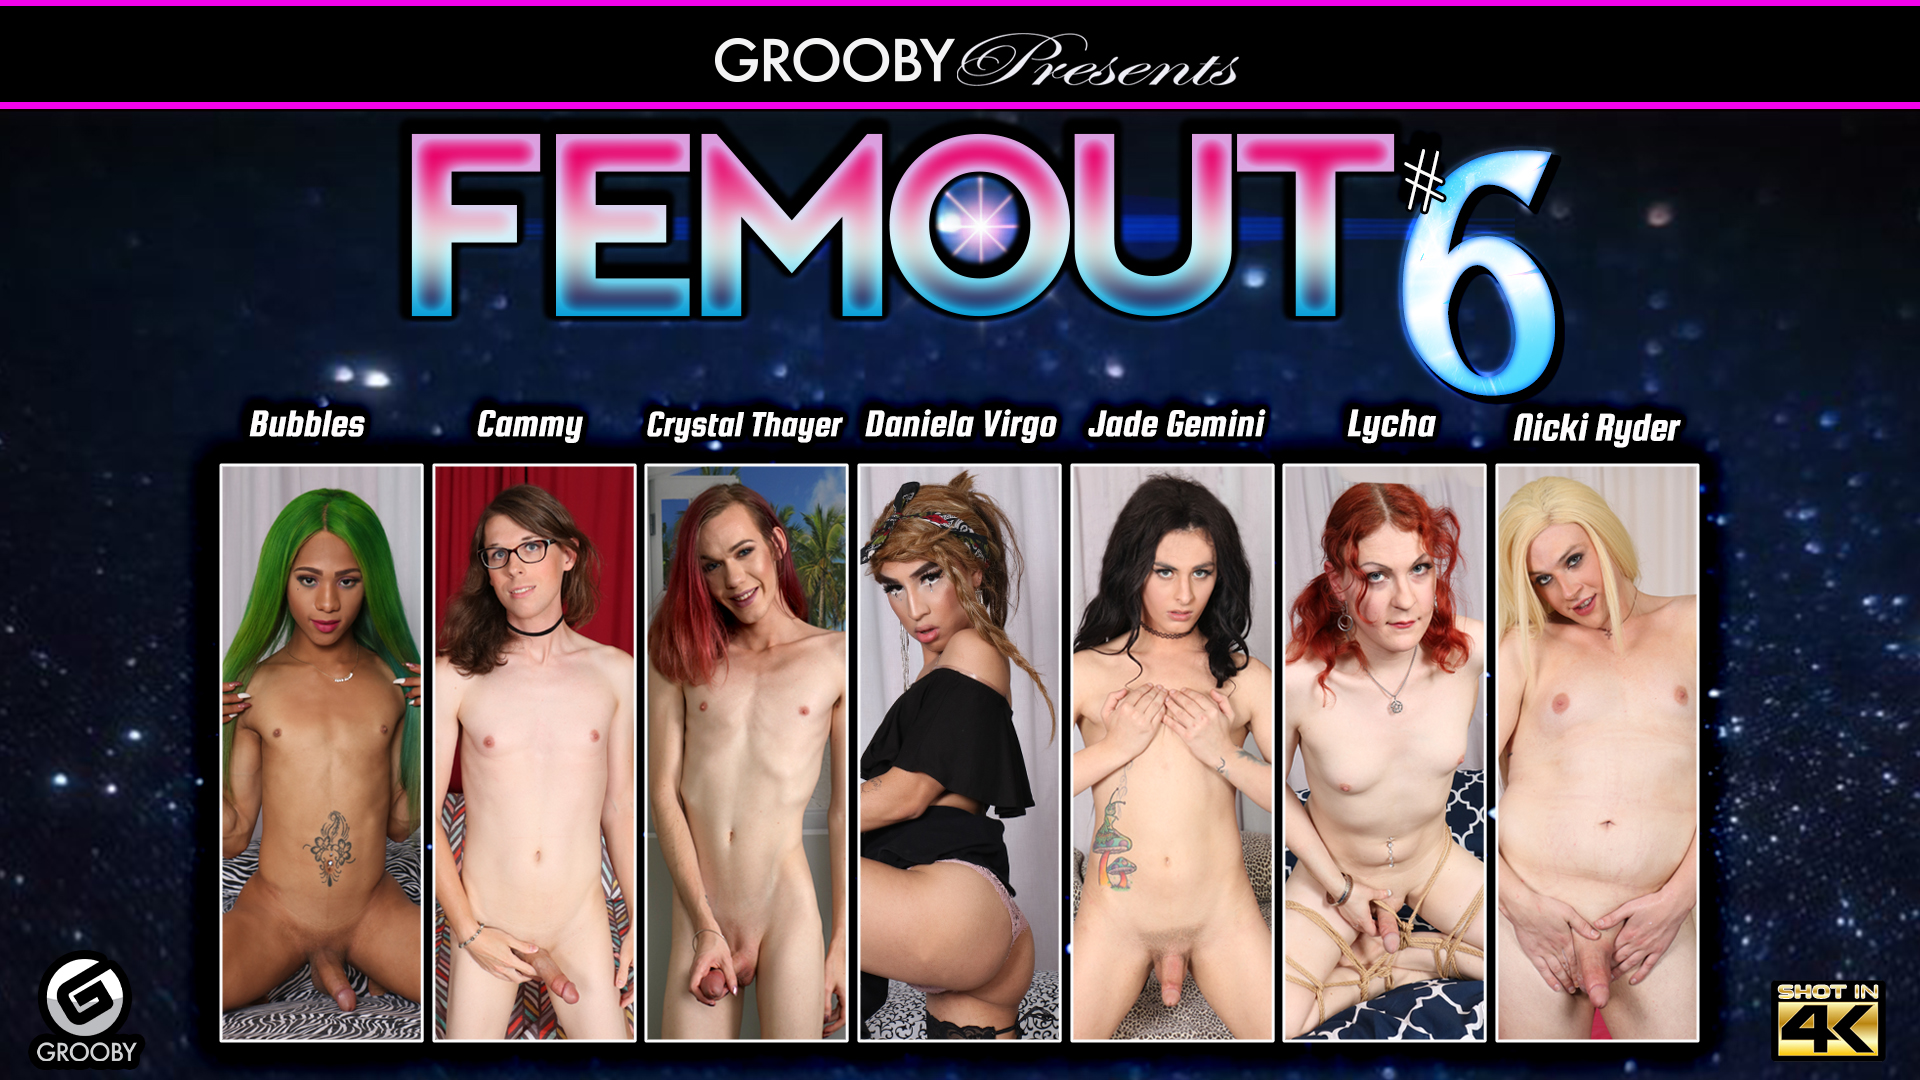 Femout #6 - DVD Trailer